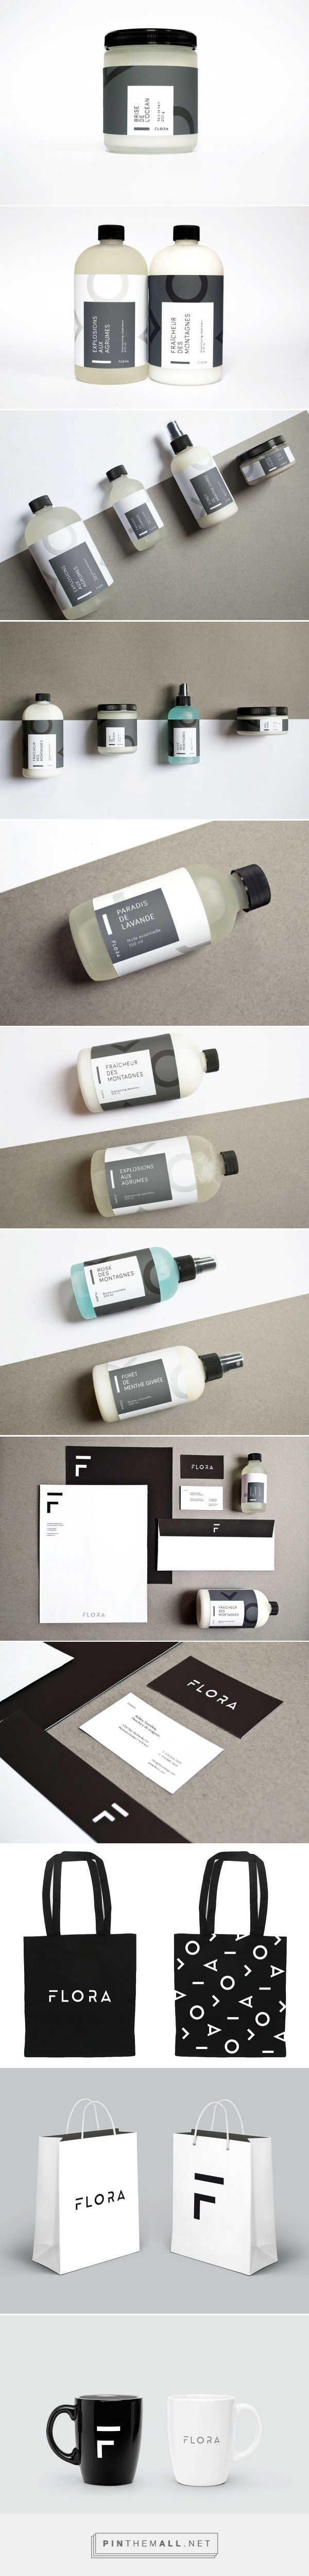 Flora on Behance by Josée Provost curated by Packaging Diva PD. School project…